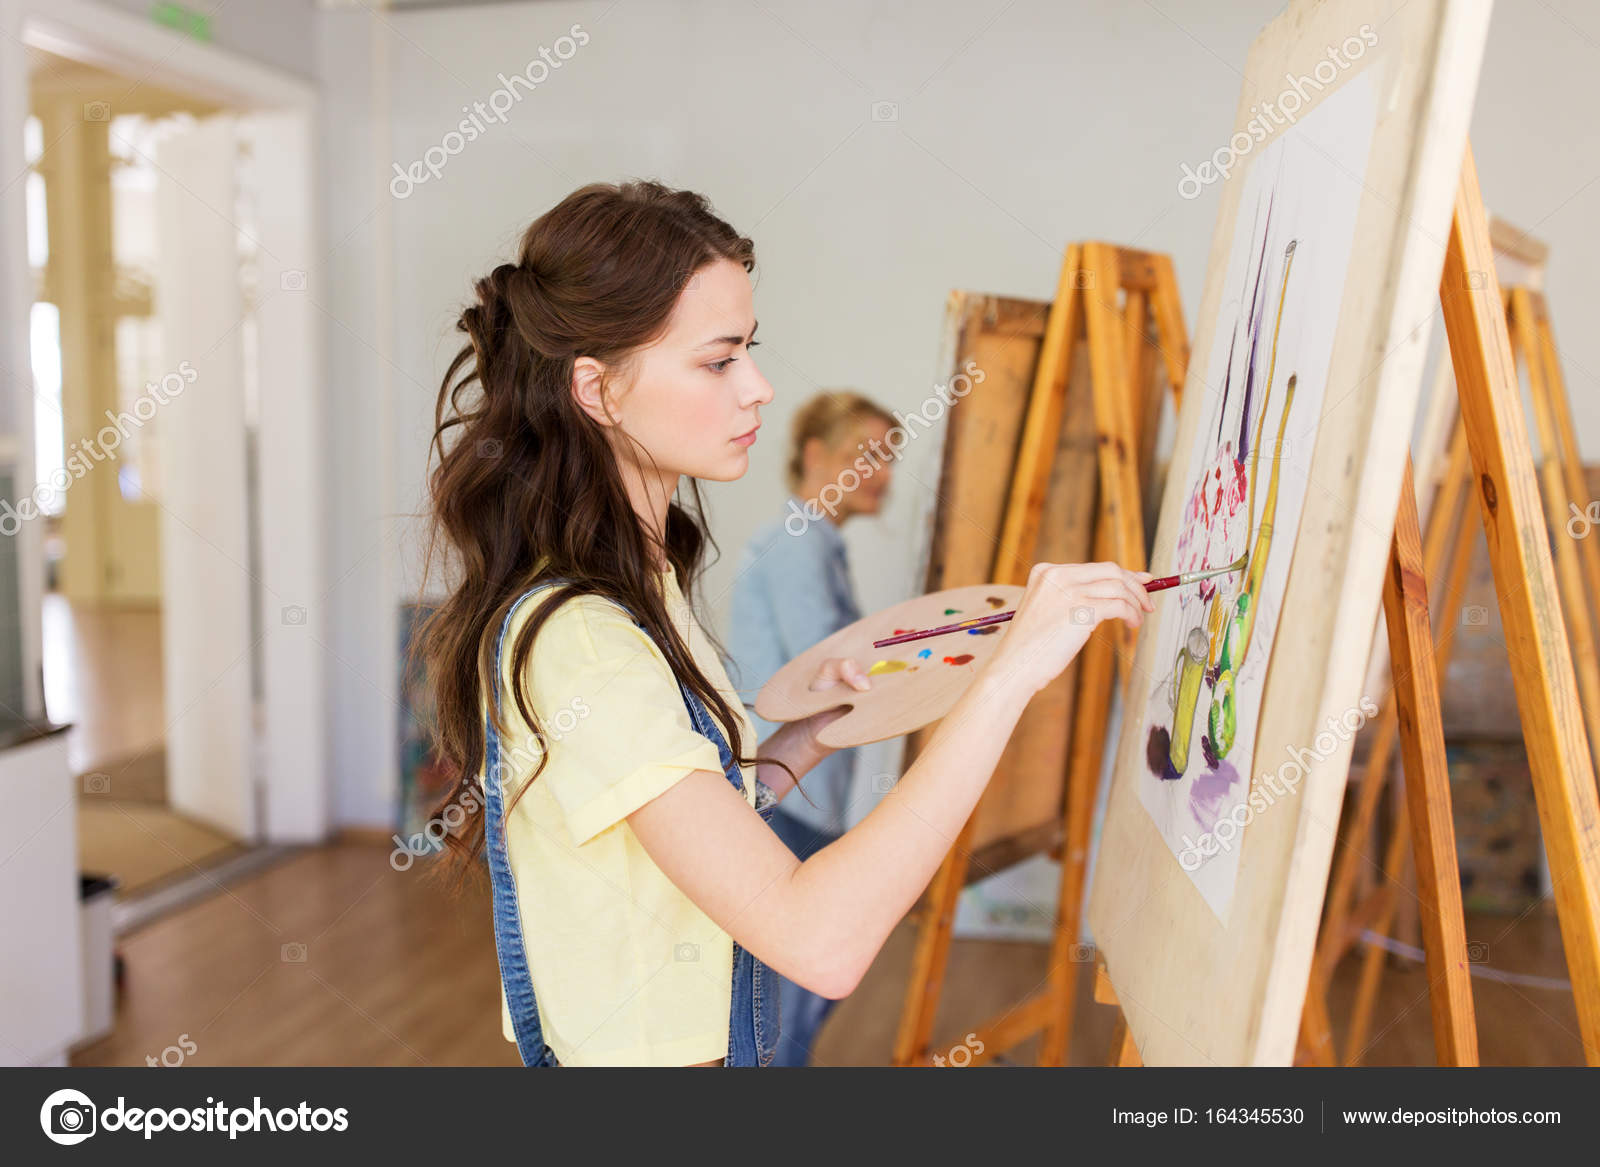 Student Girl With Easel Painting At Art School Stock Photo